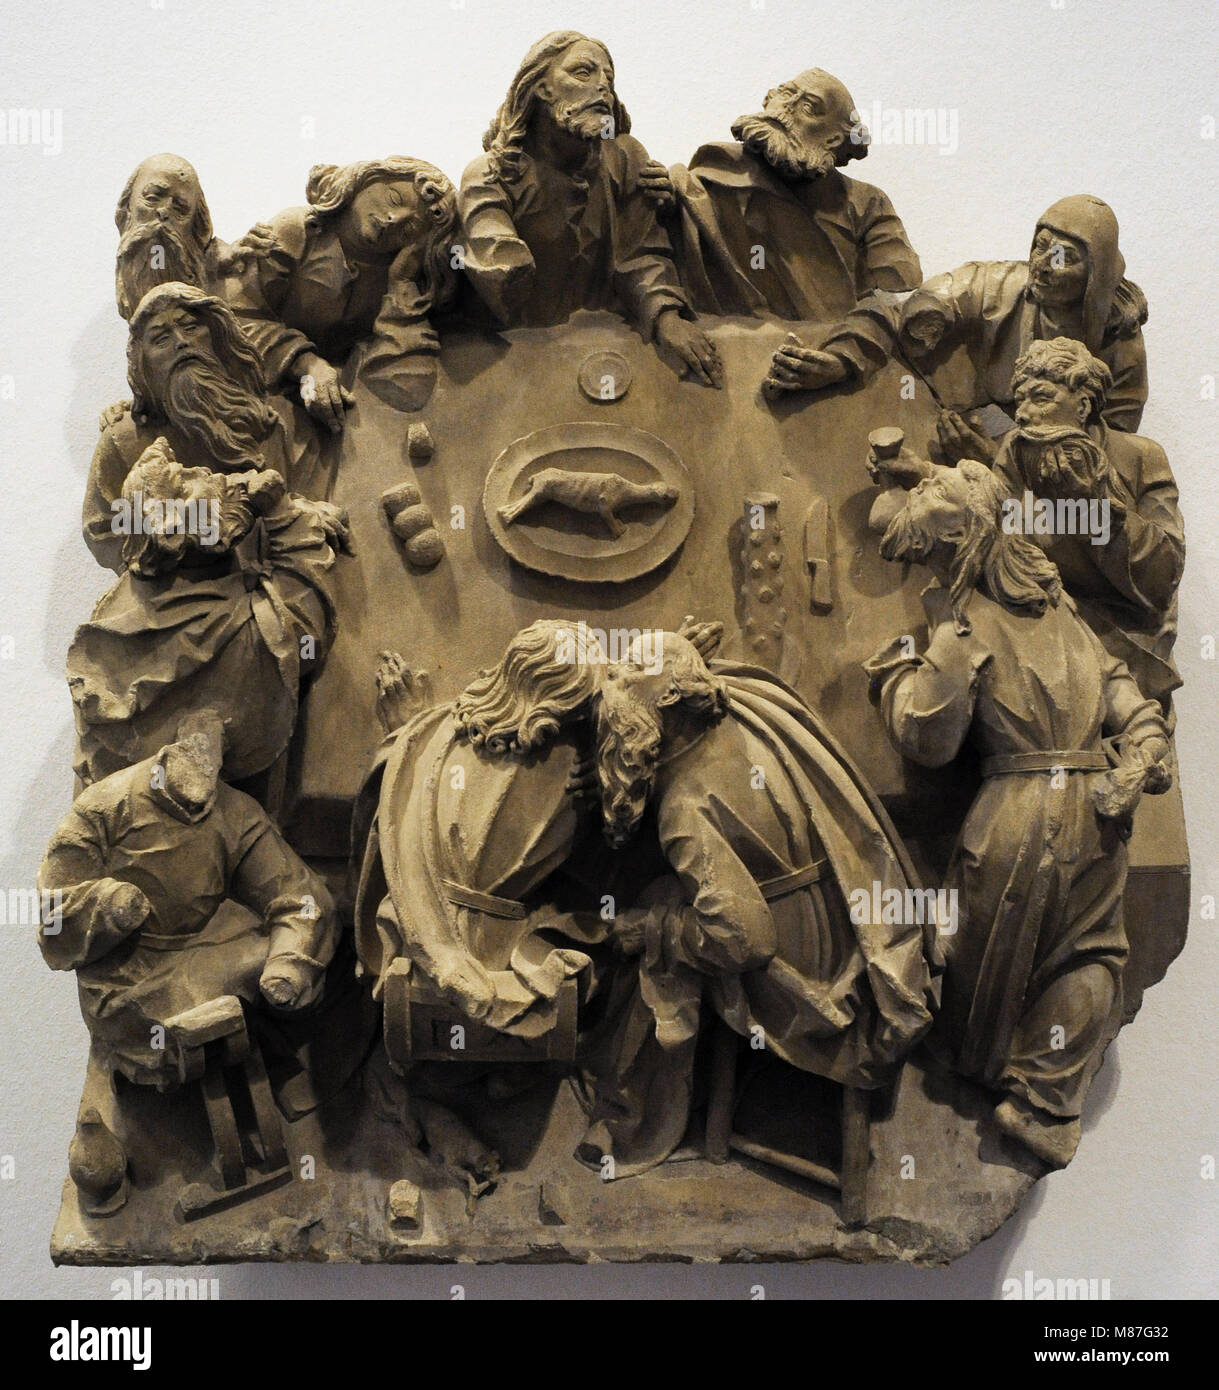 The Last Supper from the sacrament house of Cologne Cathedral, Germany. Cologne, c. 1510. Baumberg Sandstone. Schnütgen - Stock Image